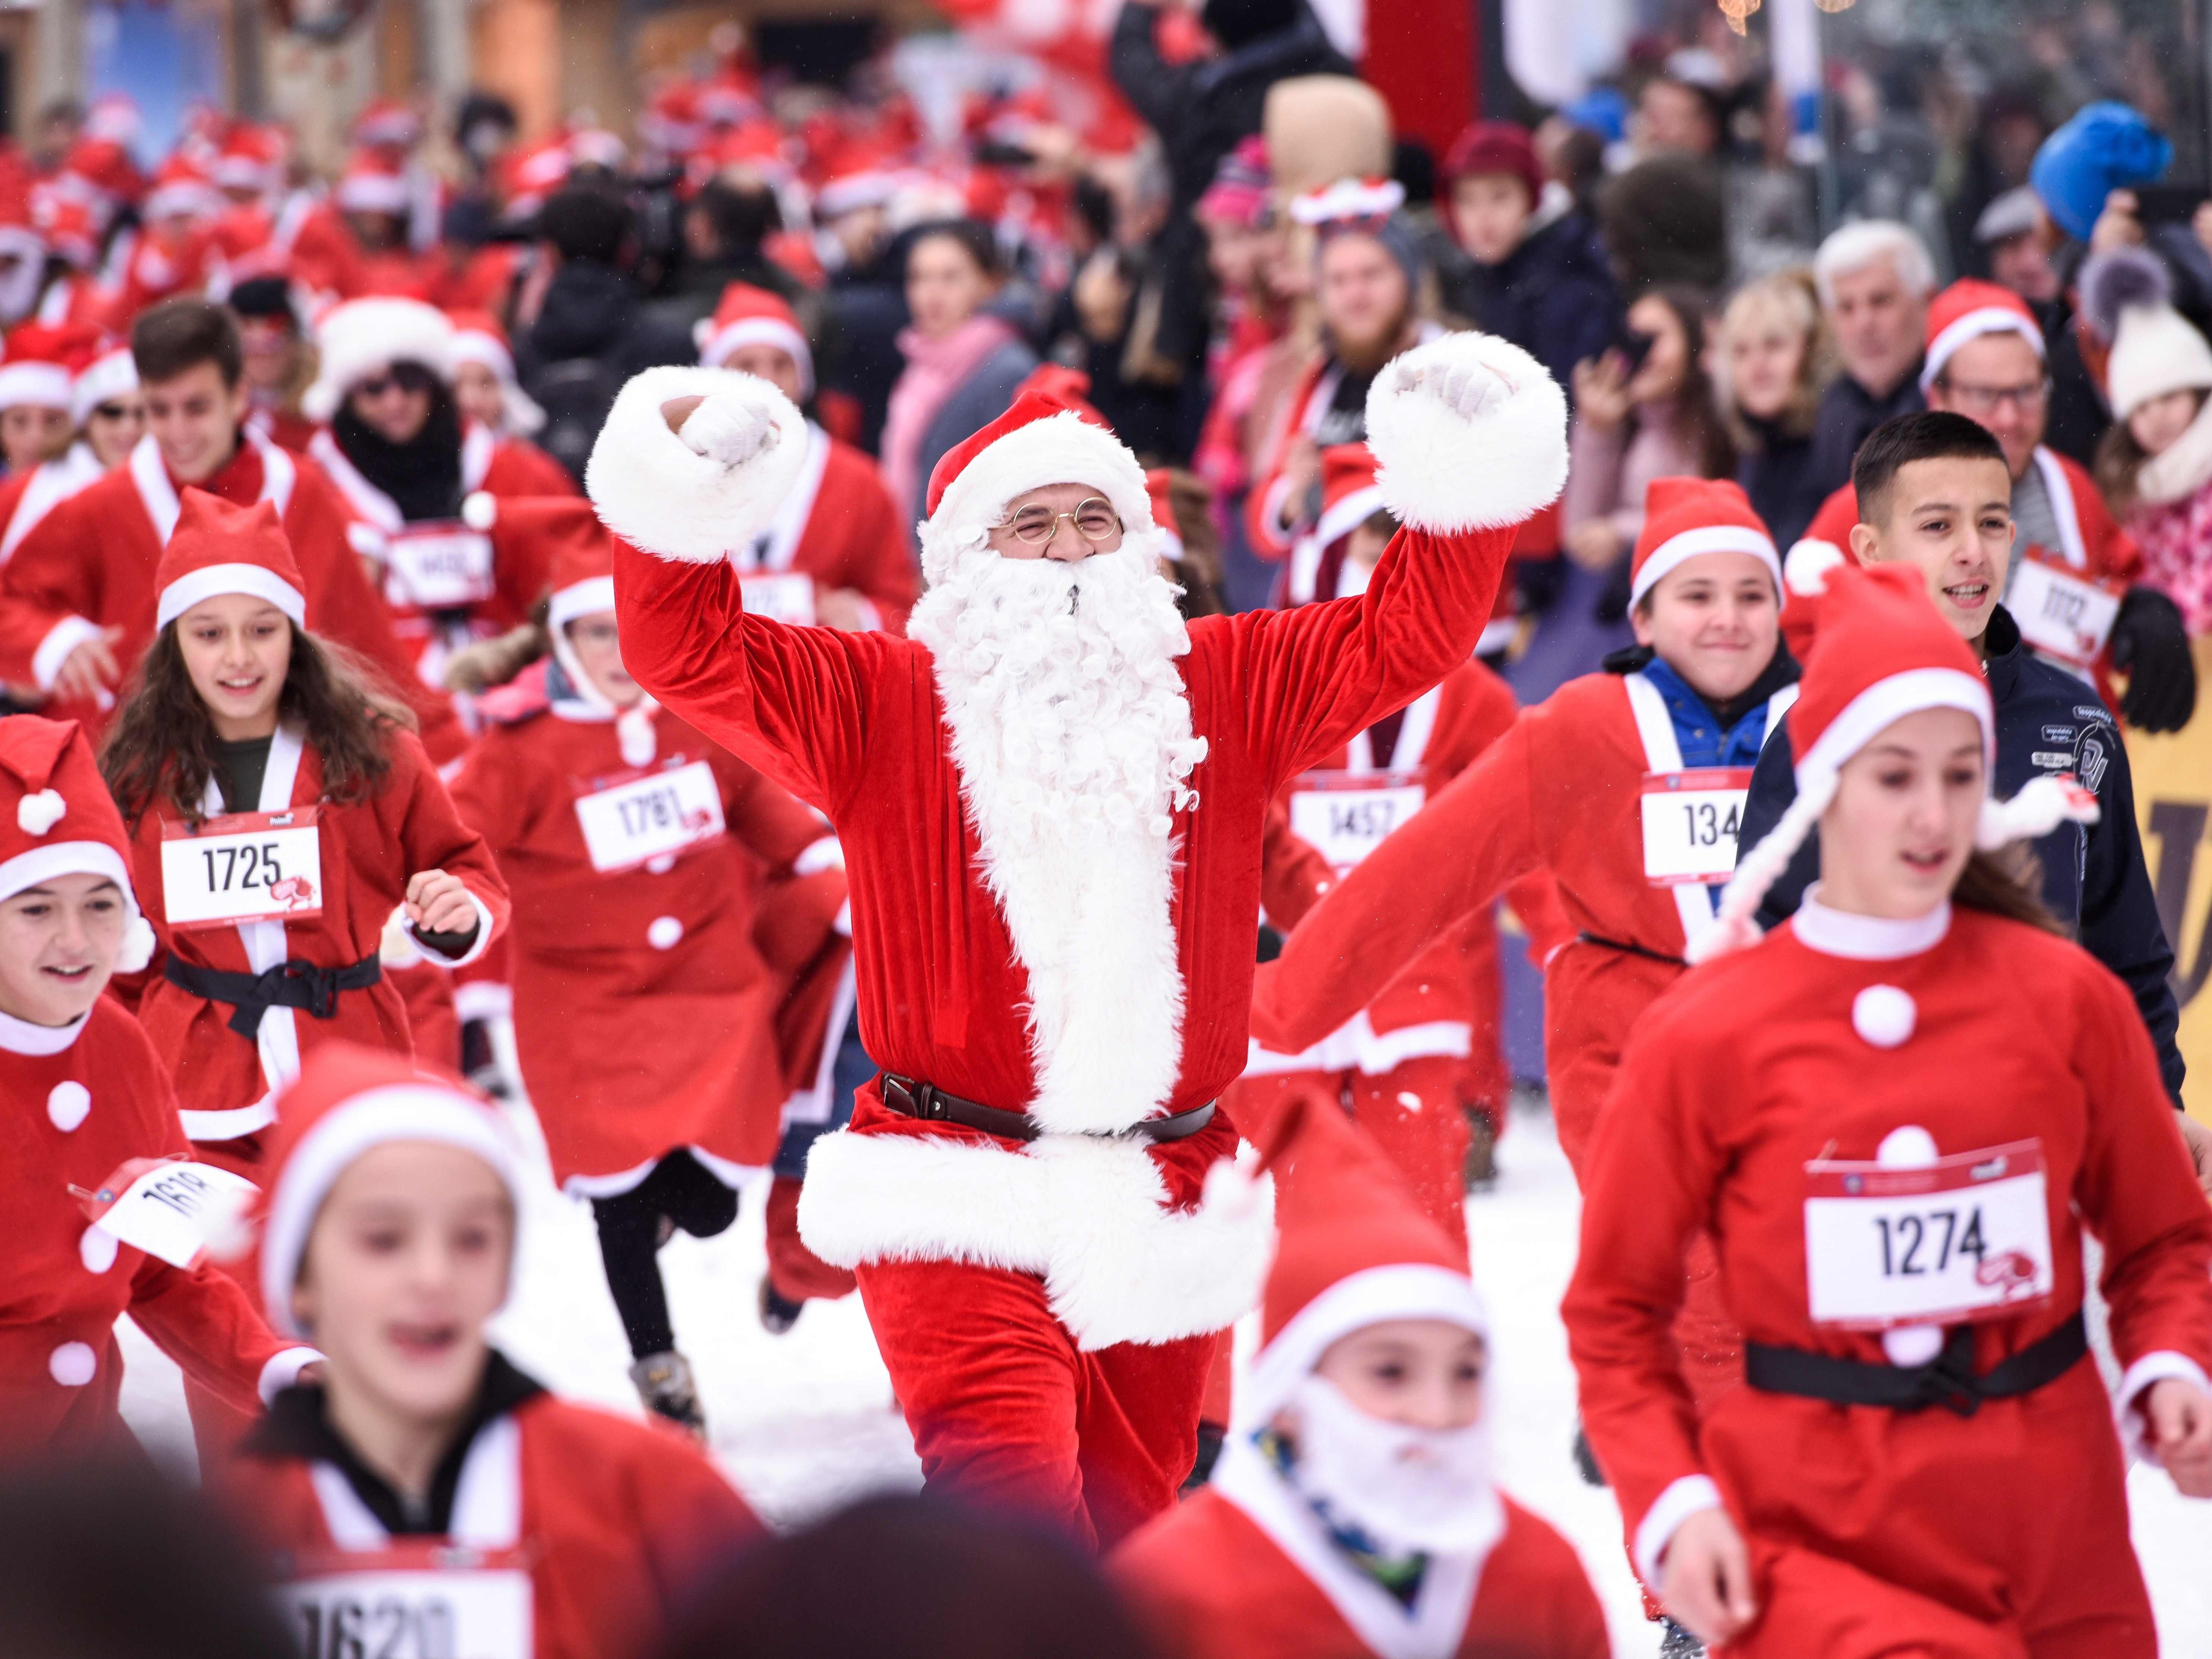 People dressed as Santa Claus take part in a charity race in Pristina, Kosovo on December 16, 2018, to raise funds for families in need in Kosovo.